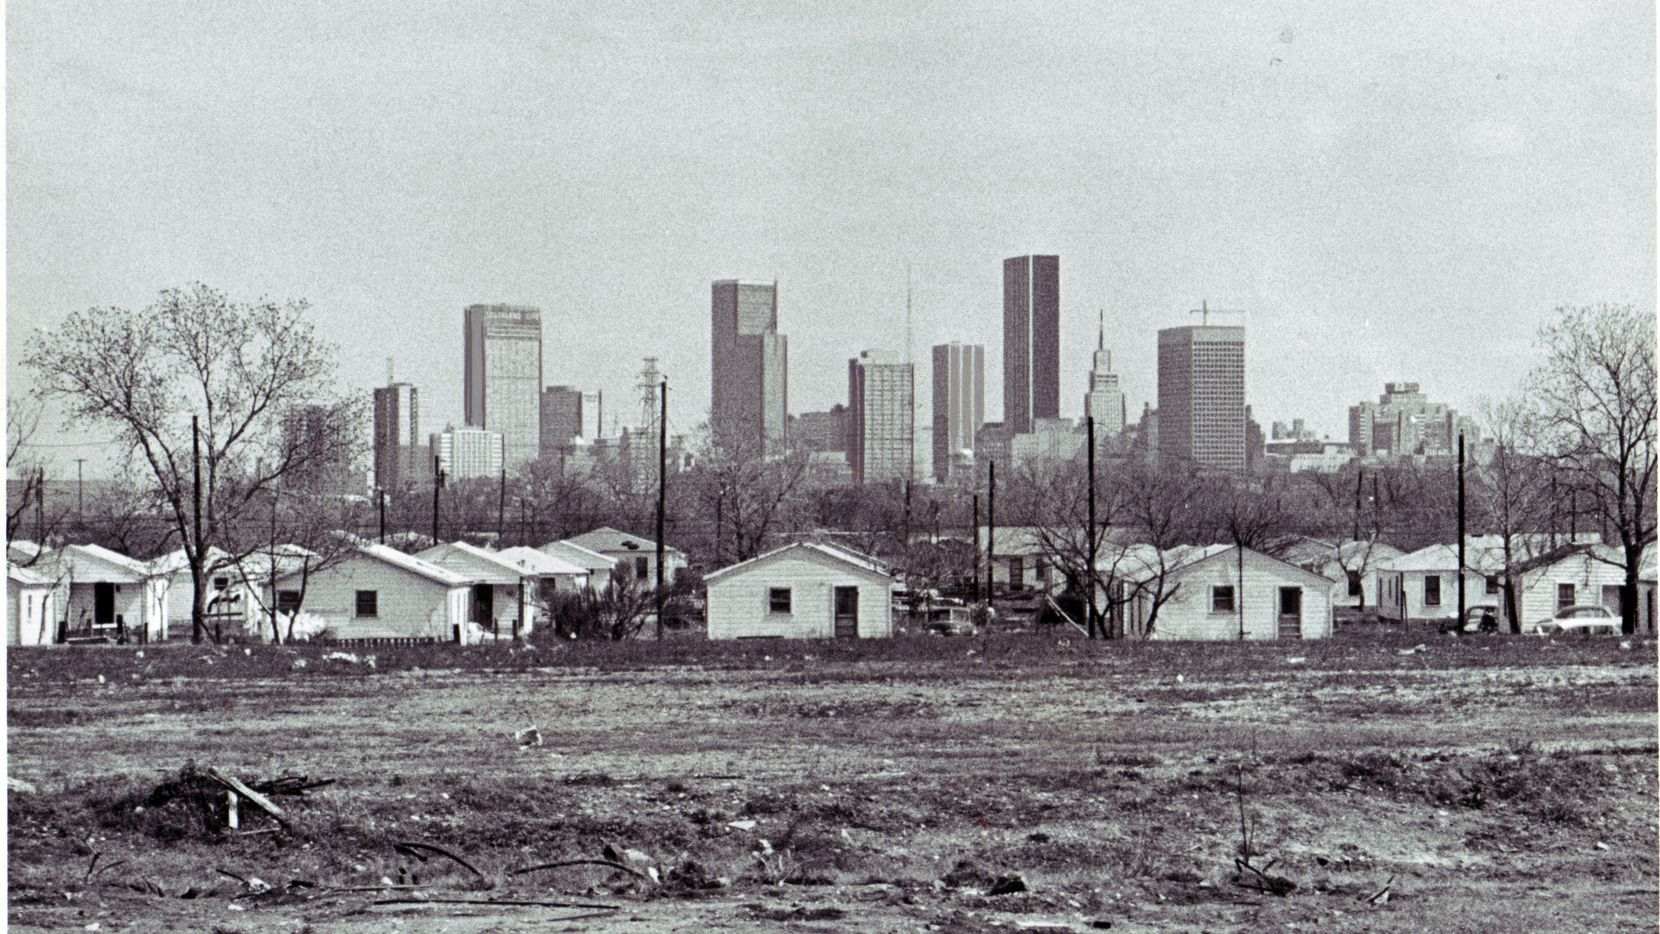 From The Dallas Morning News, Saturday, March 16, 1968 - Affluence and poverty of a growth city are reflected by Dallas' skyline looming beyond deteriorating homes. Dallas News staff photo by Bob W. Smith.  HARD COPY LOCATION: DALLAS - TEXAS - SKYLINE VIEWS 1968x1968